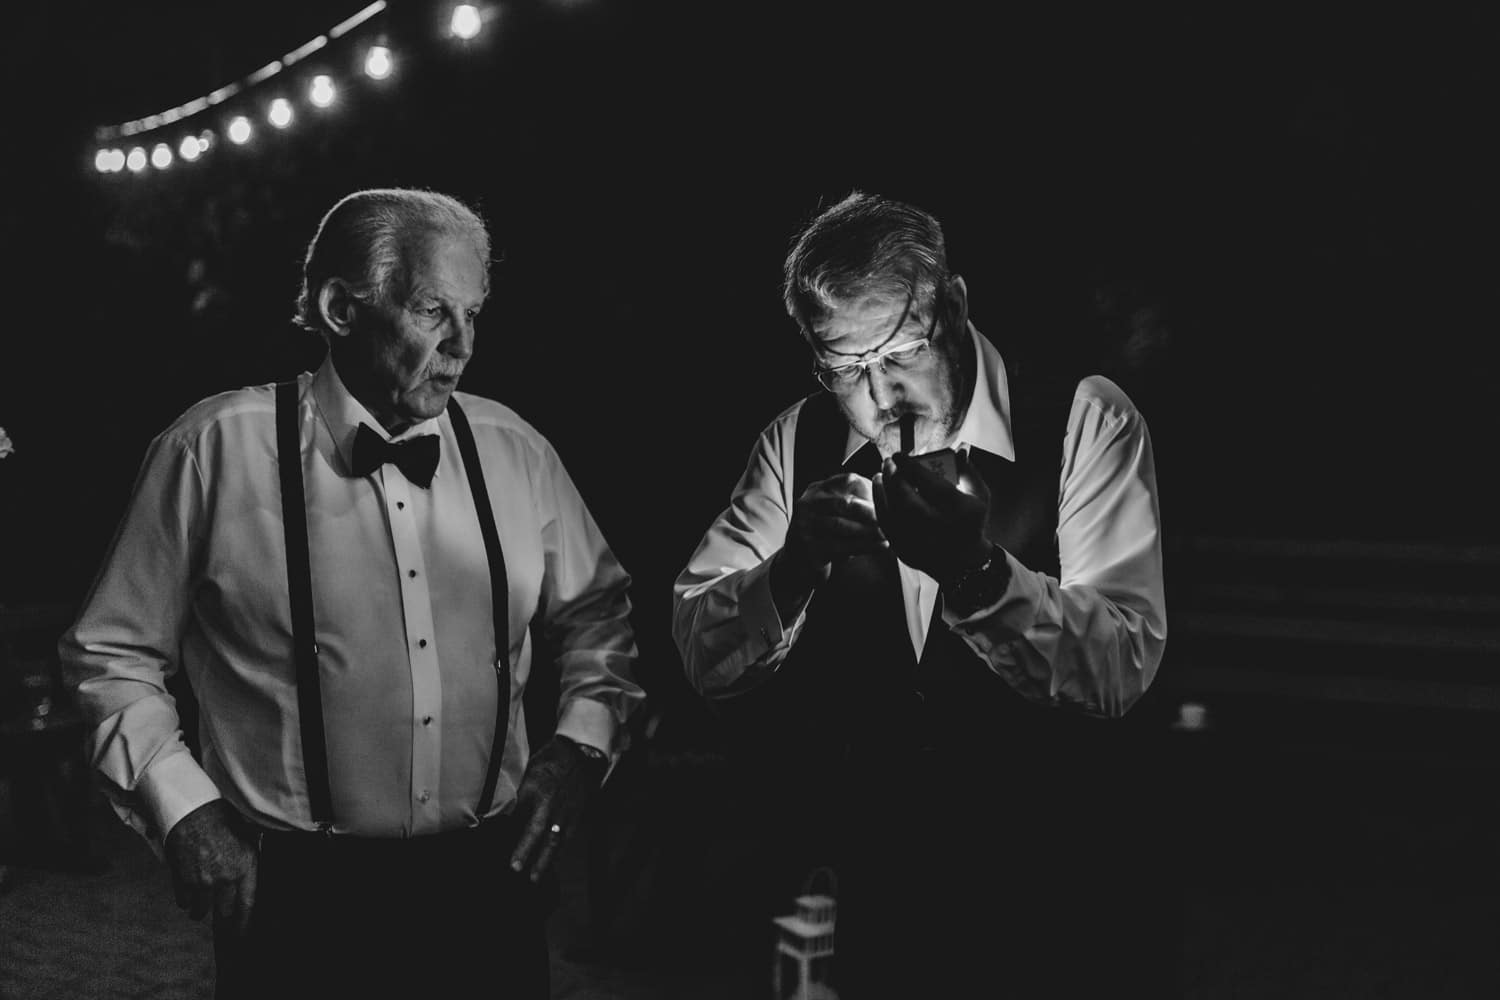 father of the bride lights up a cigar